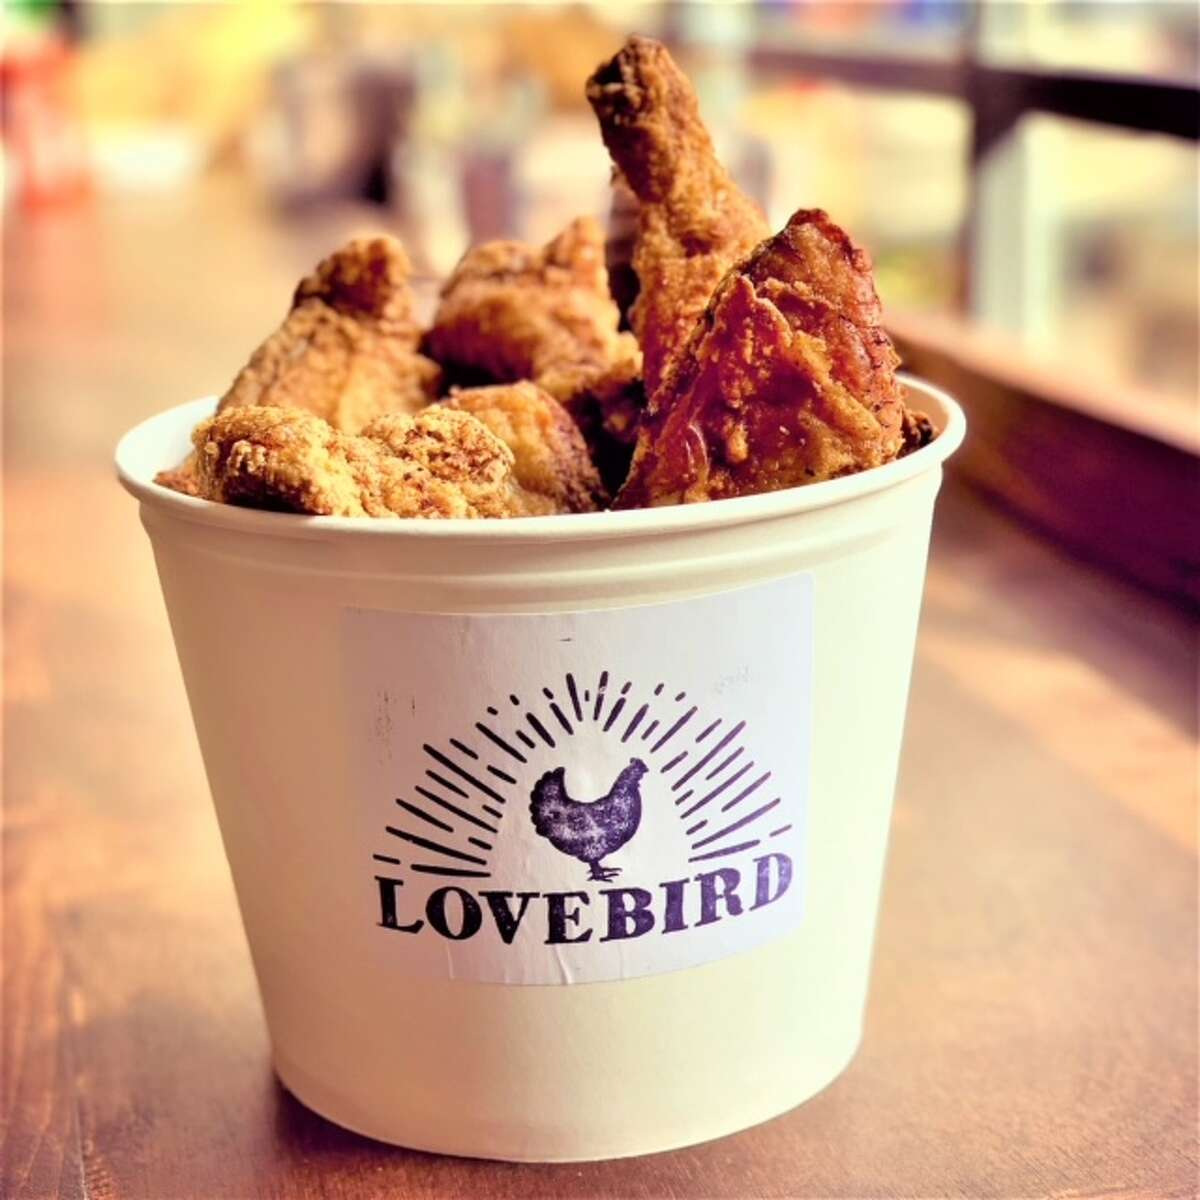 Pennsylvania chicken restaurant Lovebird will be opening its first out-of-state restaurant in Fairfield, Conn. with the late summer opening of Lovebird Fairfield.